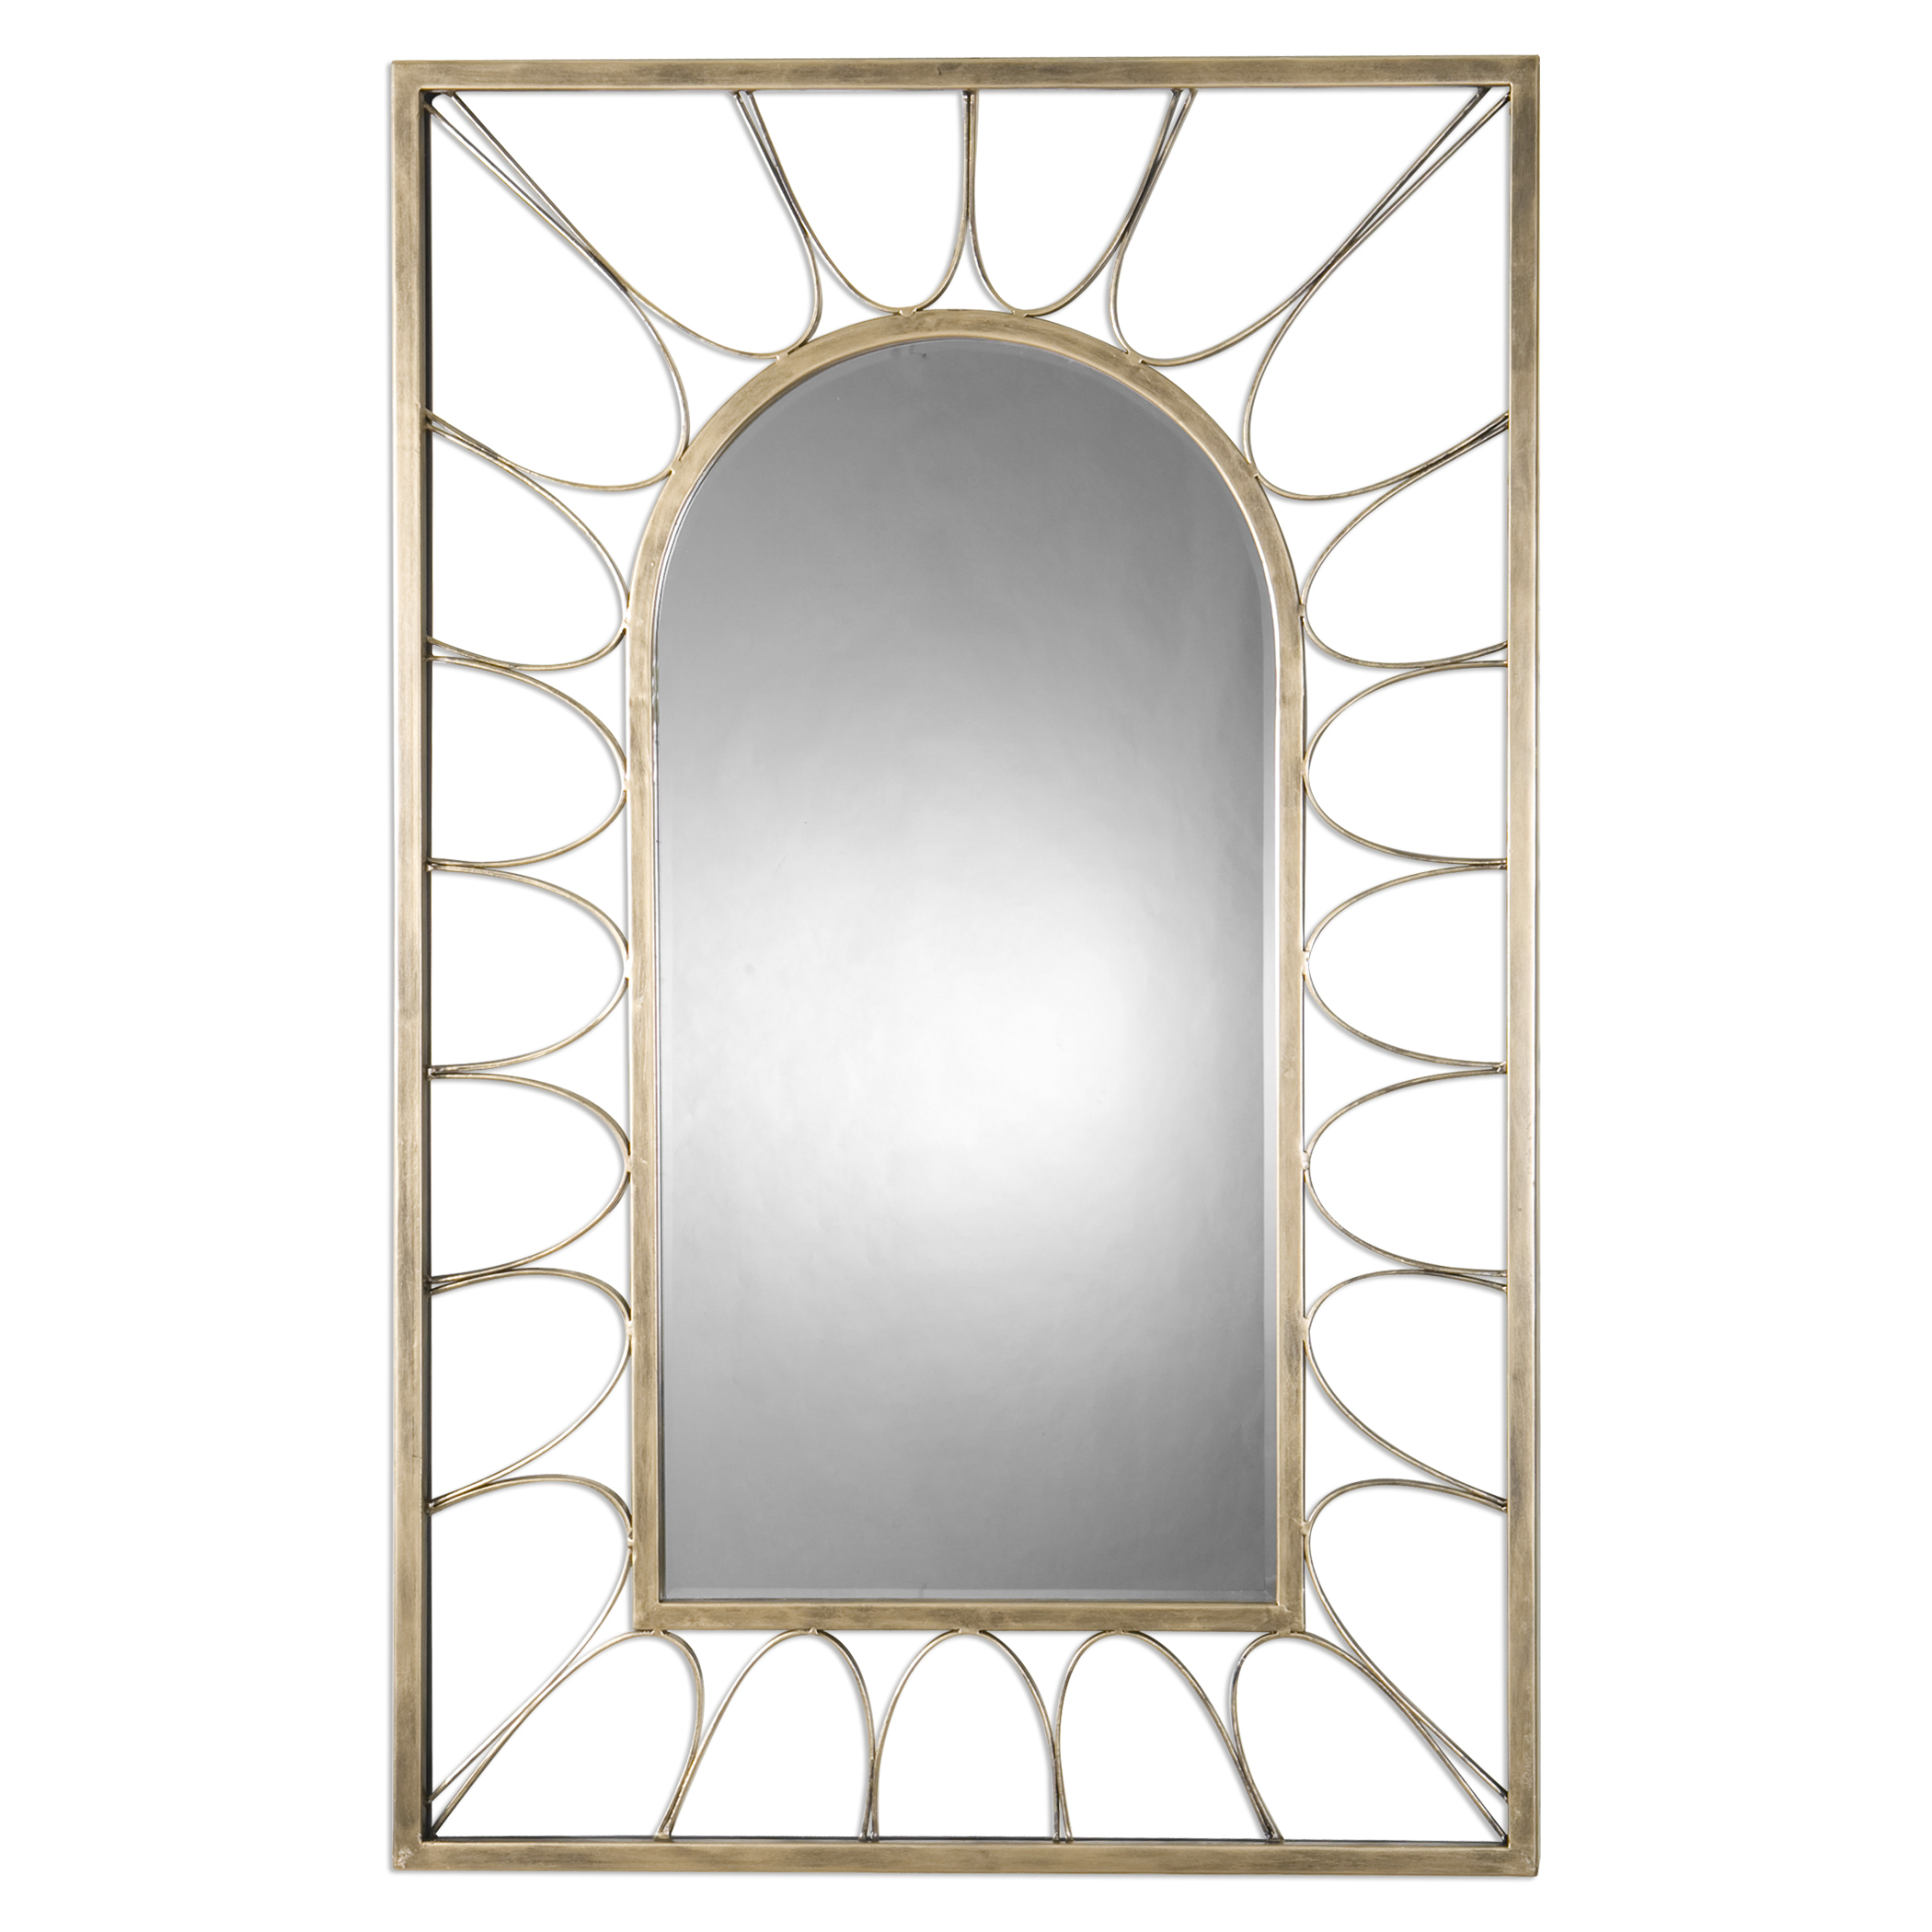 Uttermost Mirrors Calvados Gold Arch Mirror - Item Number: 09085